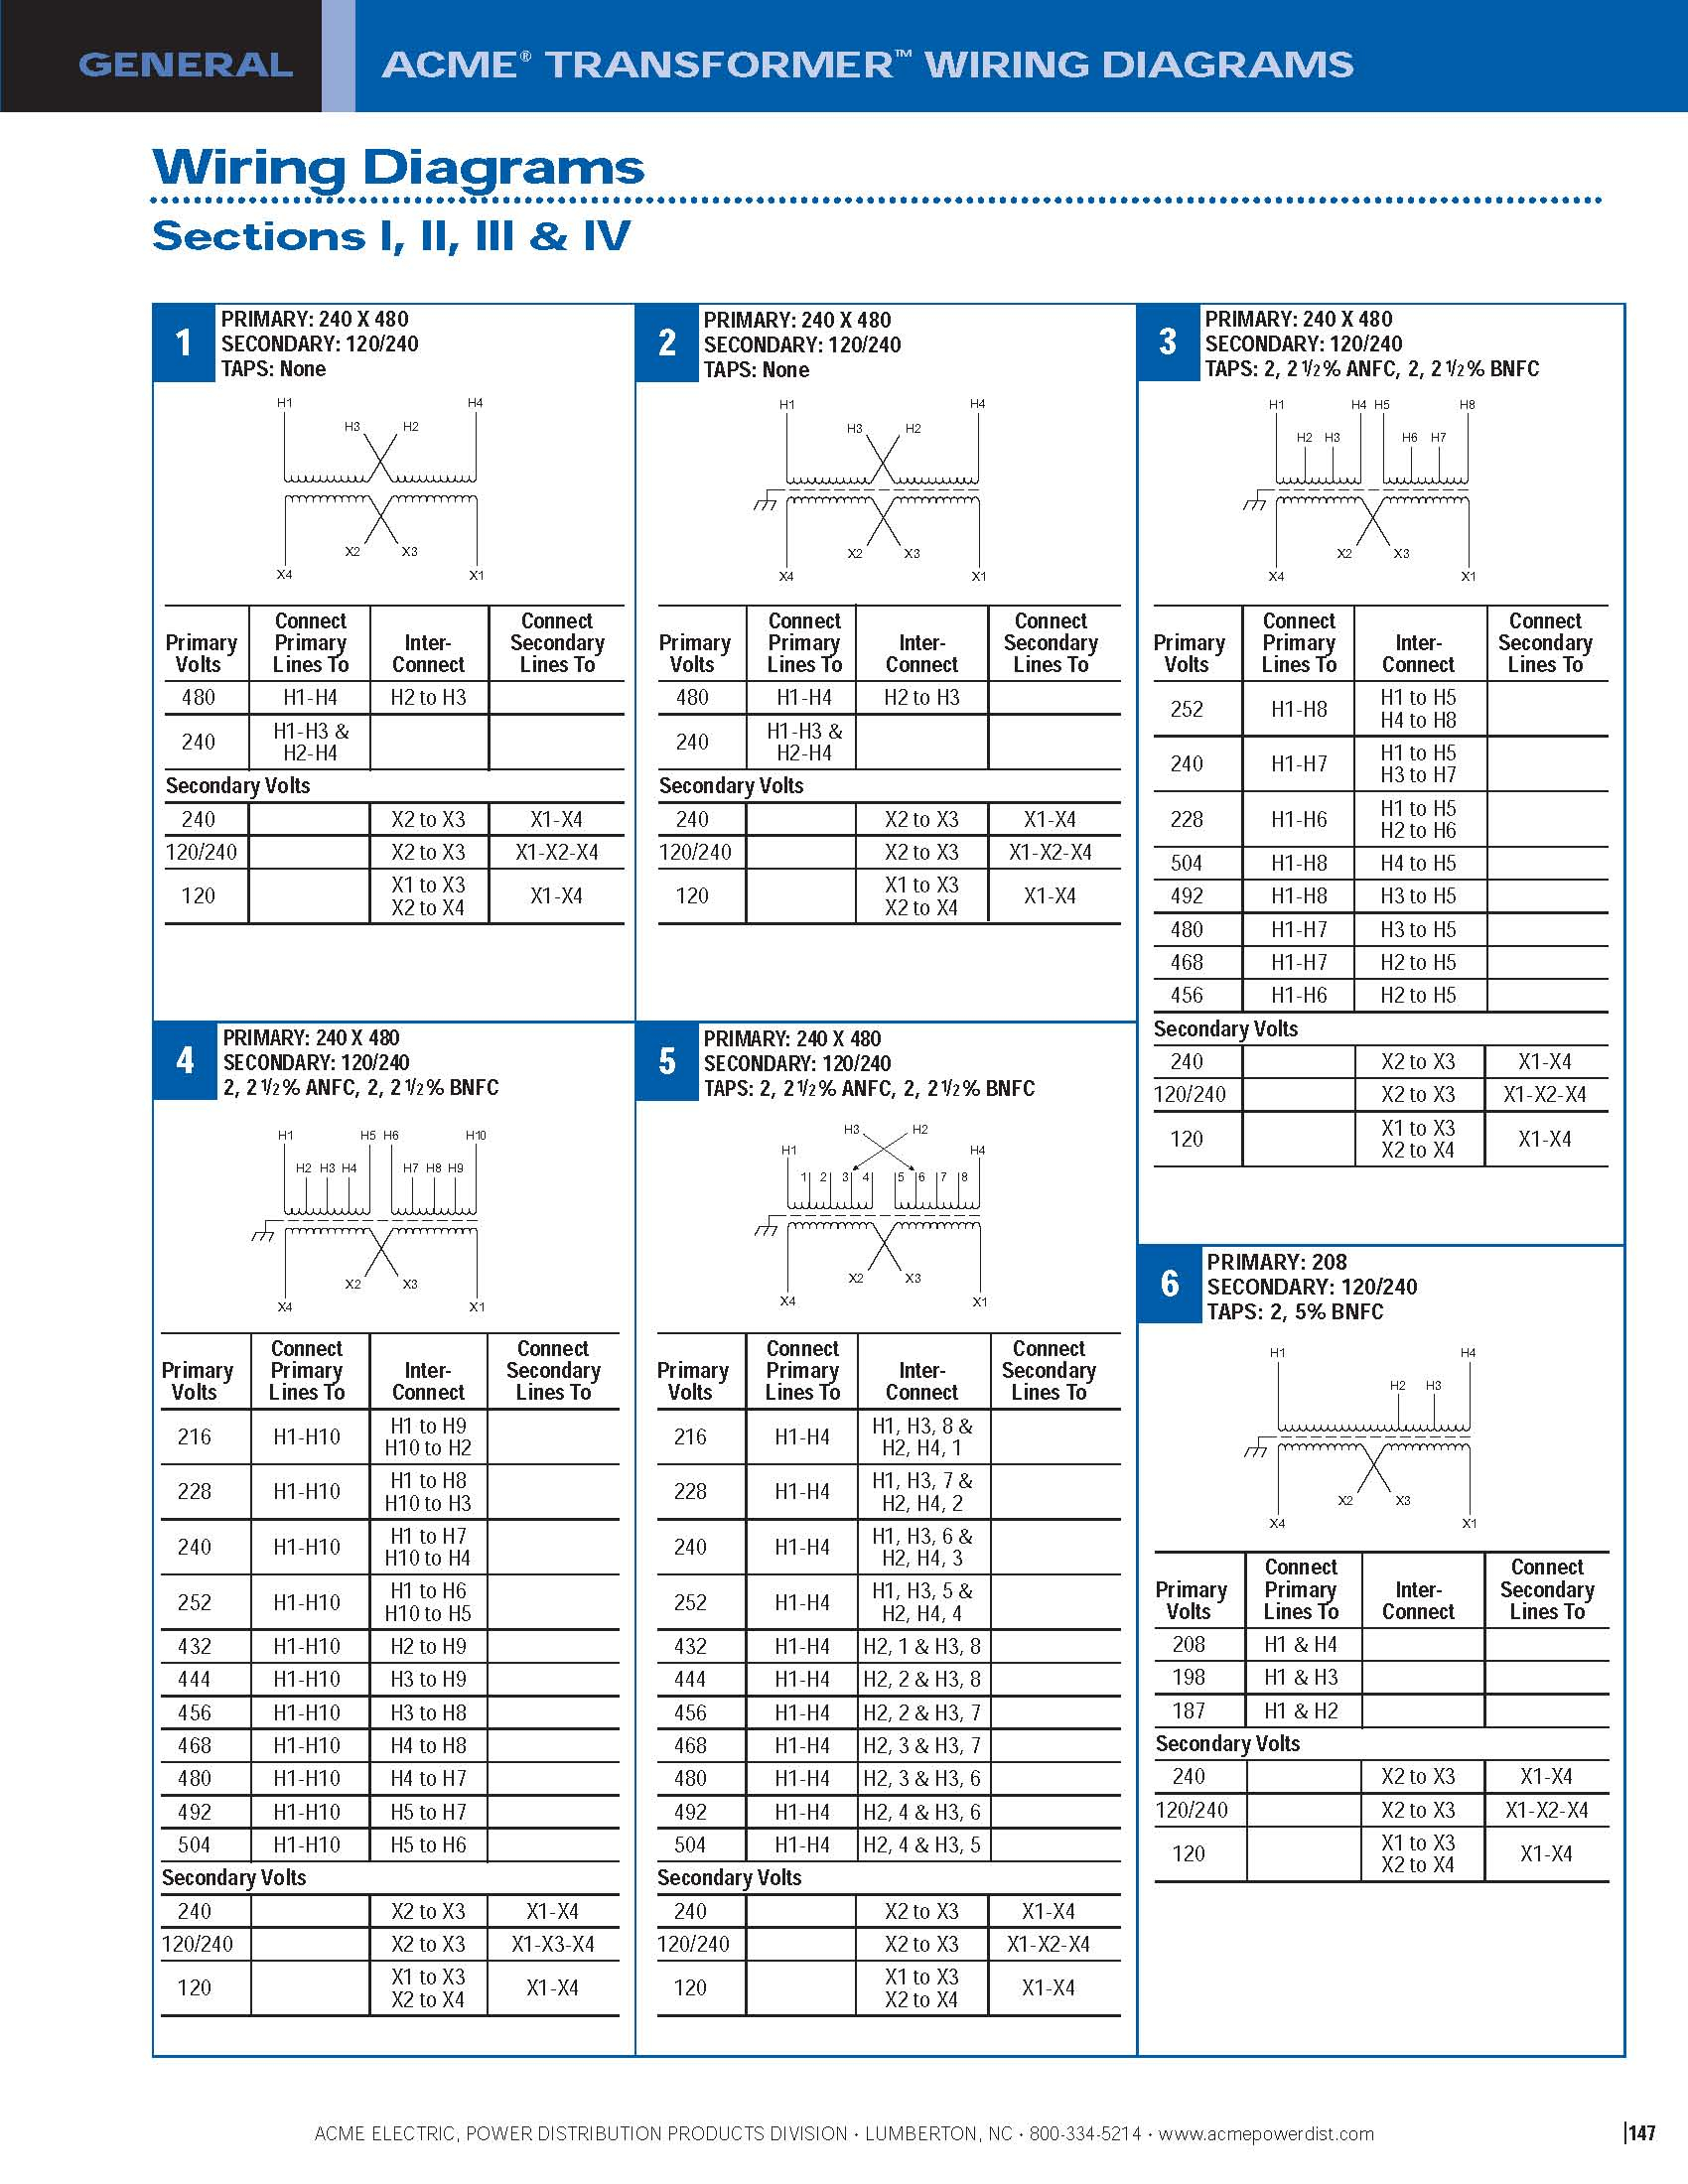 acme buck boost transformer wiring diagram Download-In Acme Buck Boost Transformer Wiring Diagram With Transformers Diagrams 10-s